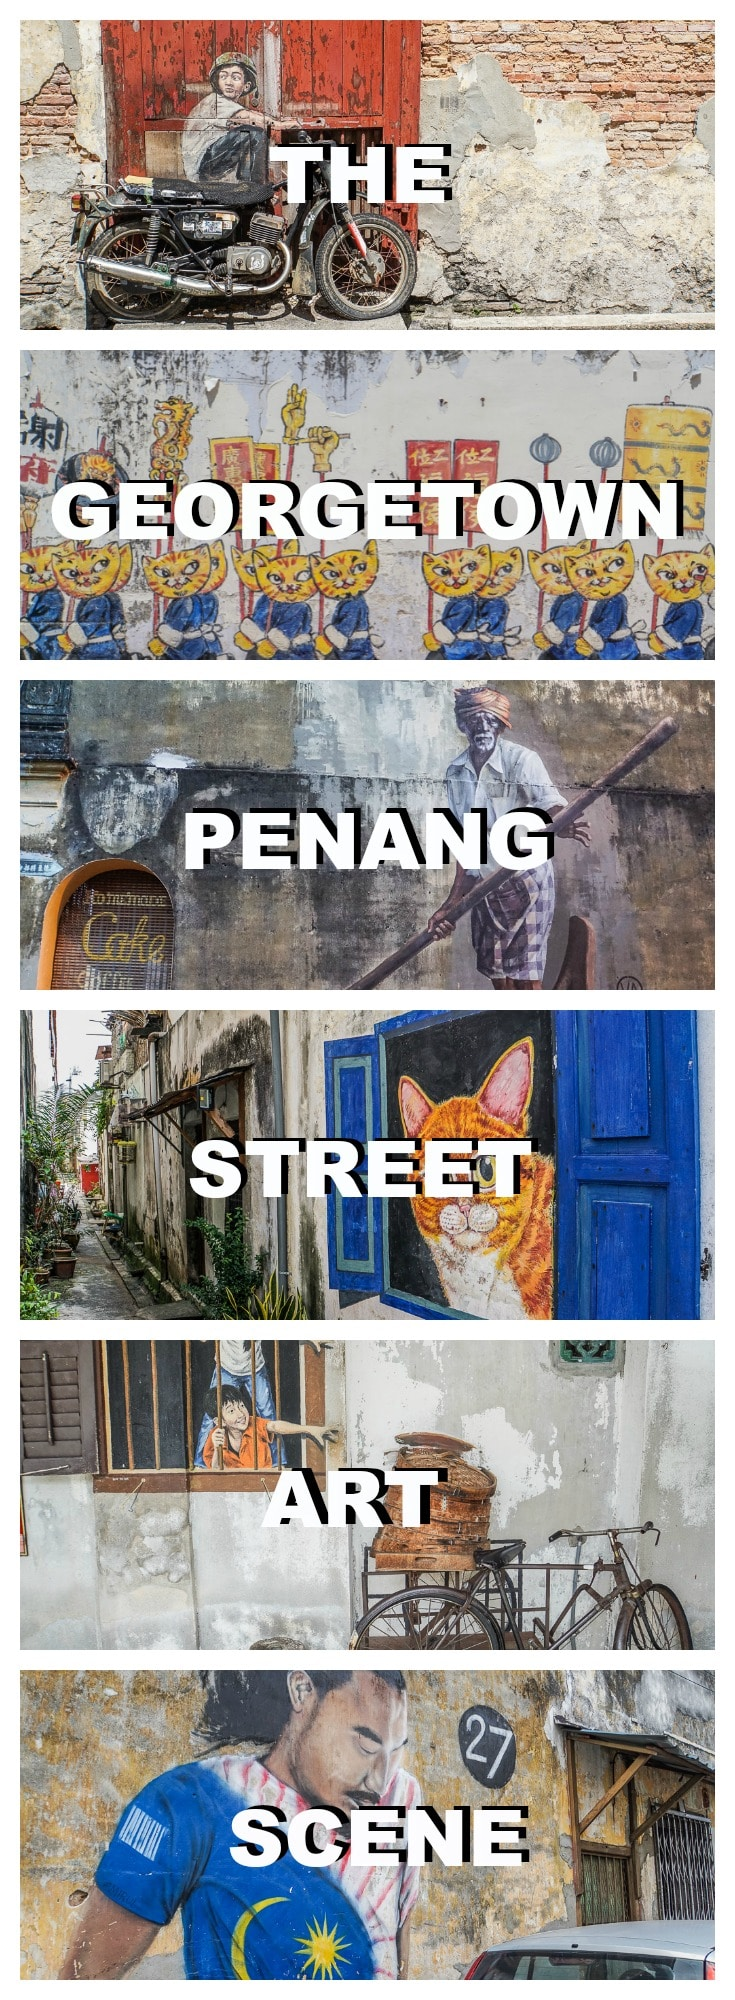 Georgetown in Penang isn't only a UNESCO World Heritage Site, it's a living art gallery. Read and see why the Georgetown street art scene has exploded.